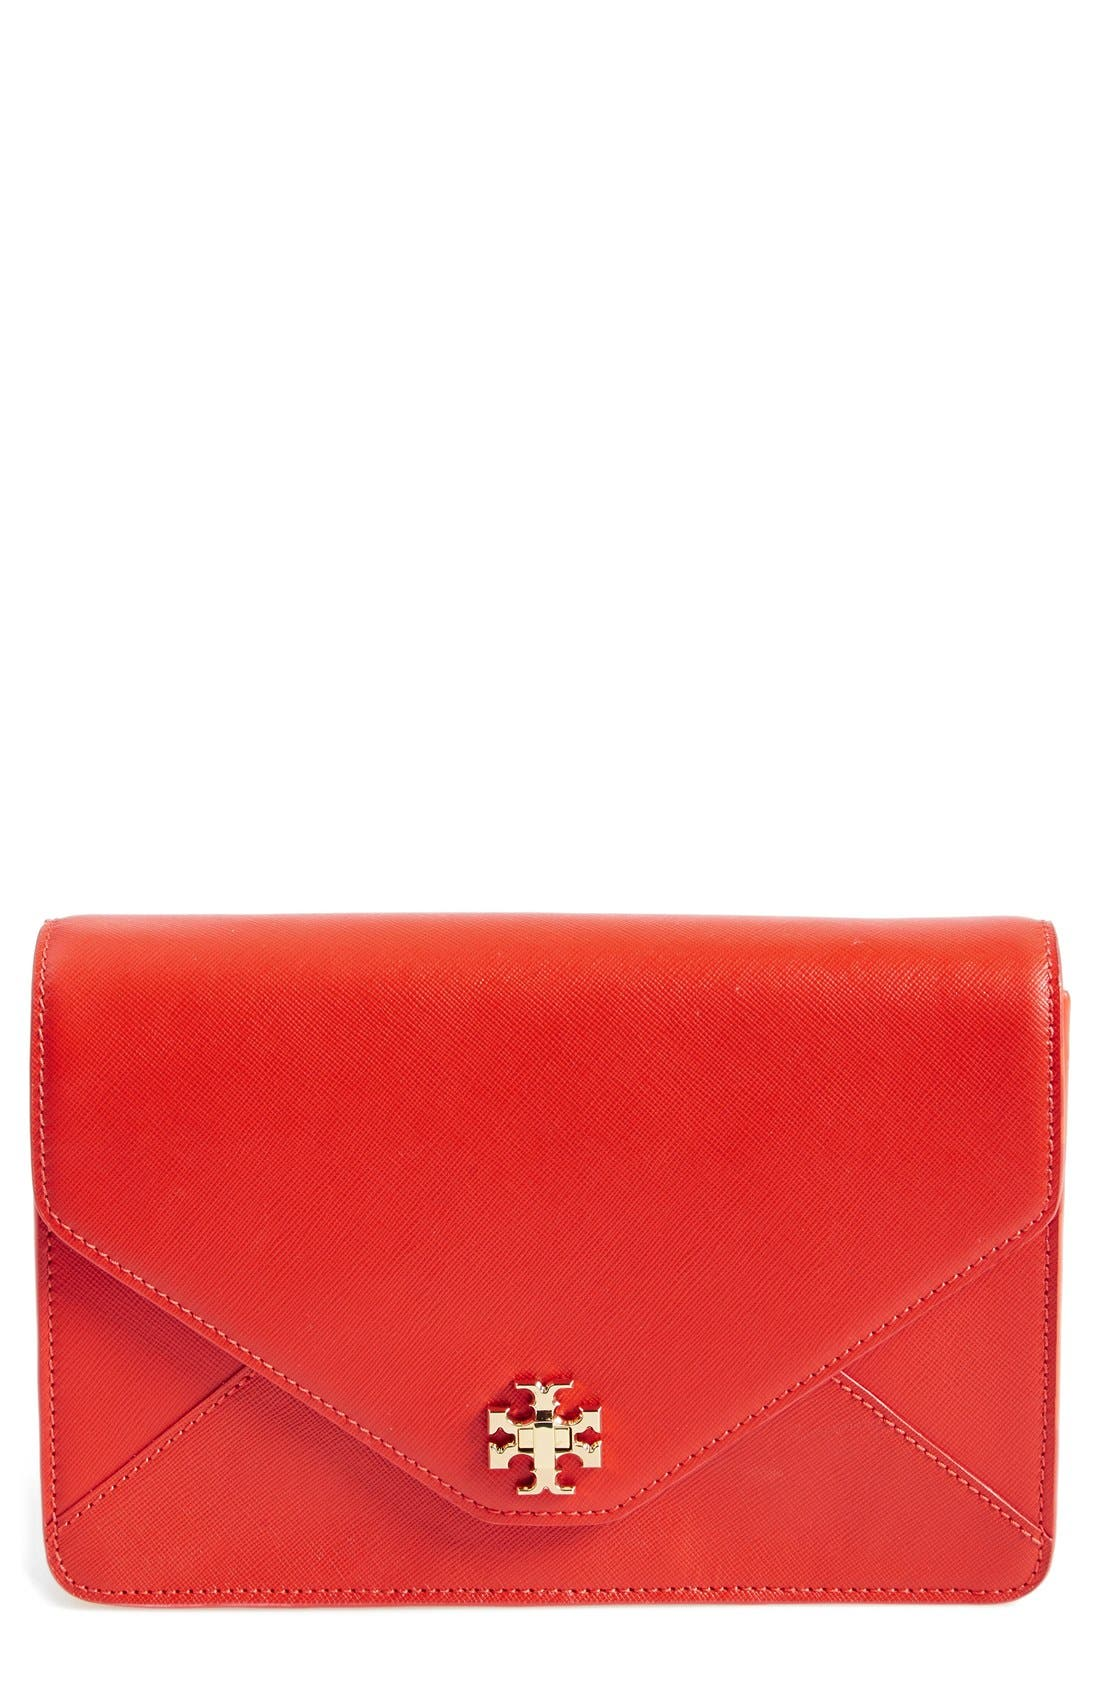 Alternate Image 1 Selected - Tory Burch 'Kira' Envelope Clutch